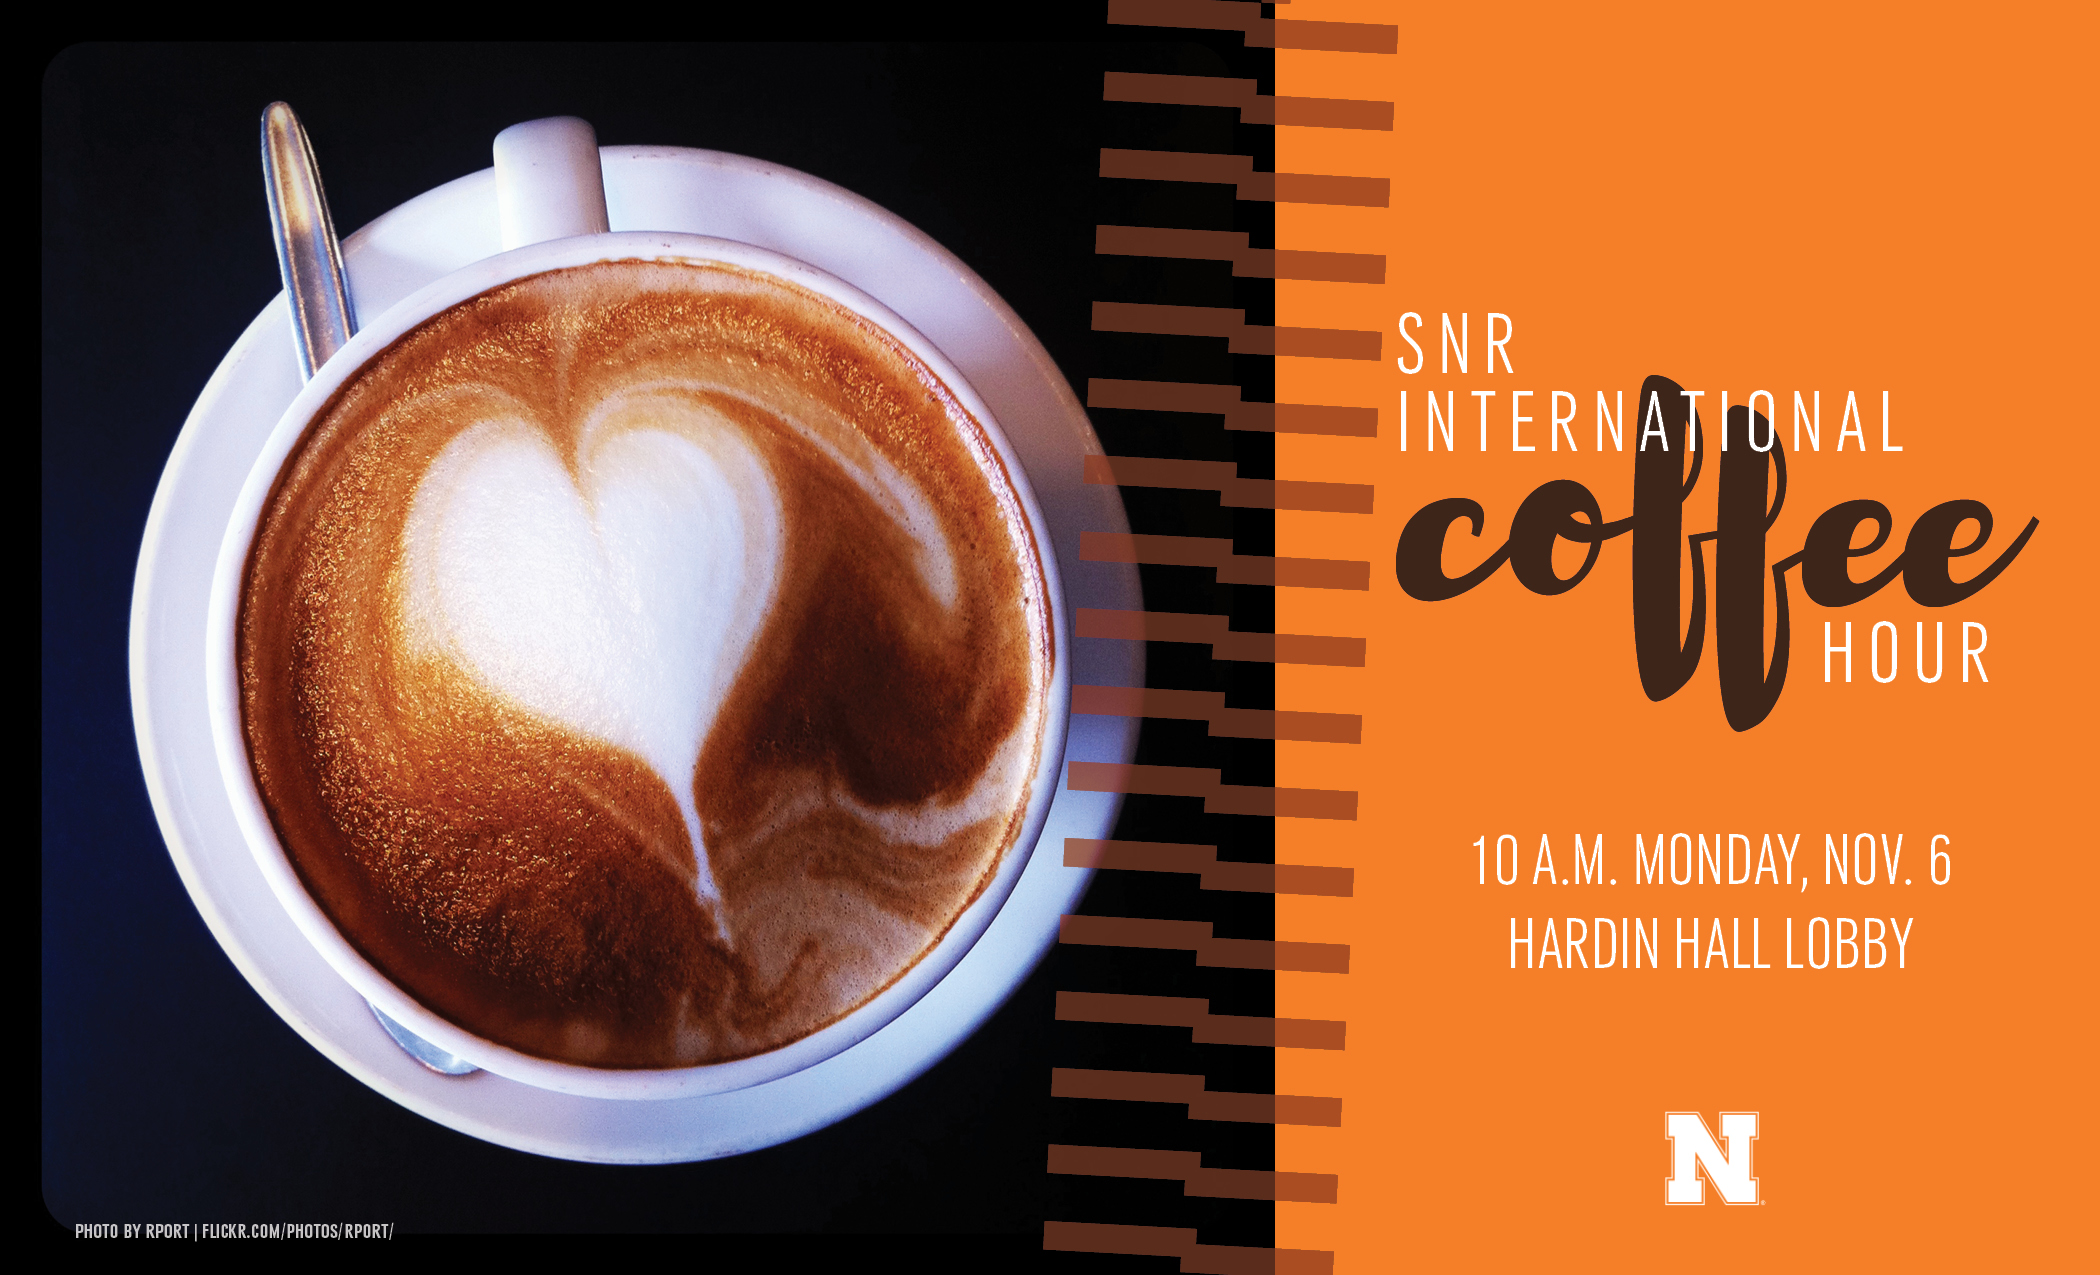 SNR is hosting an international coffee hour Nov. 6 in Hardin Hall.